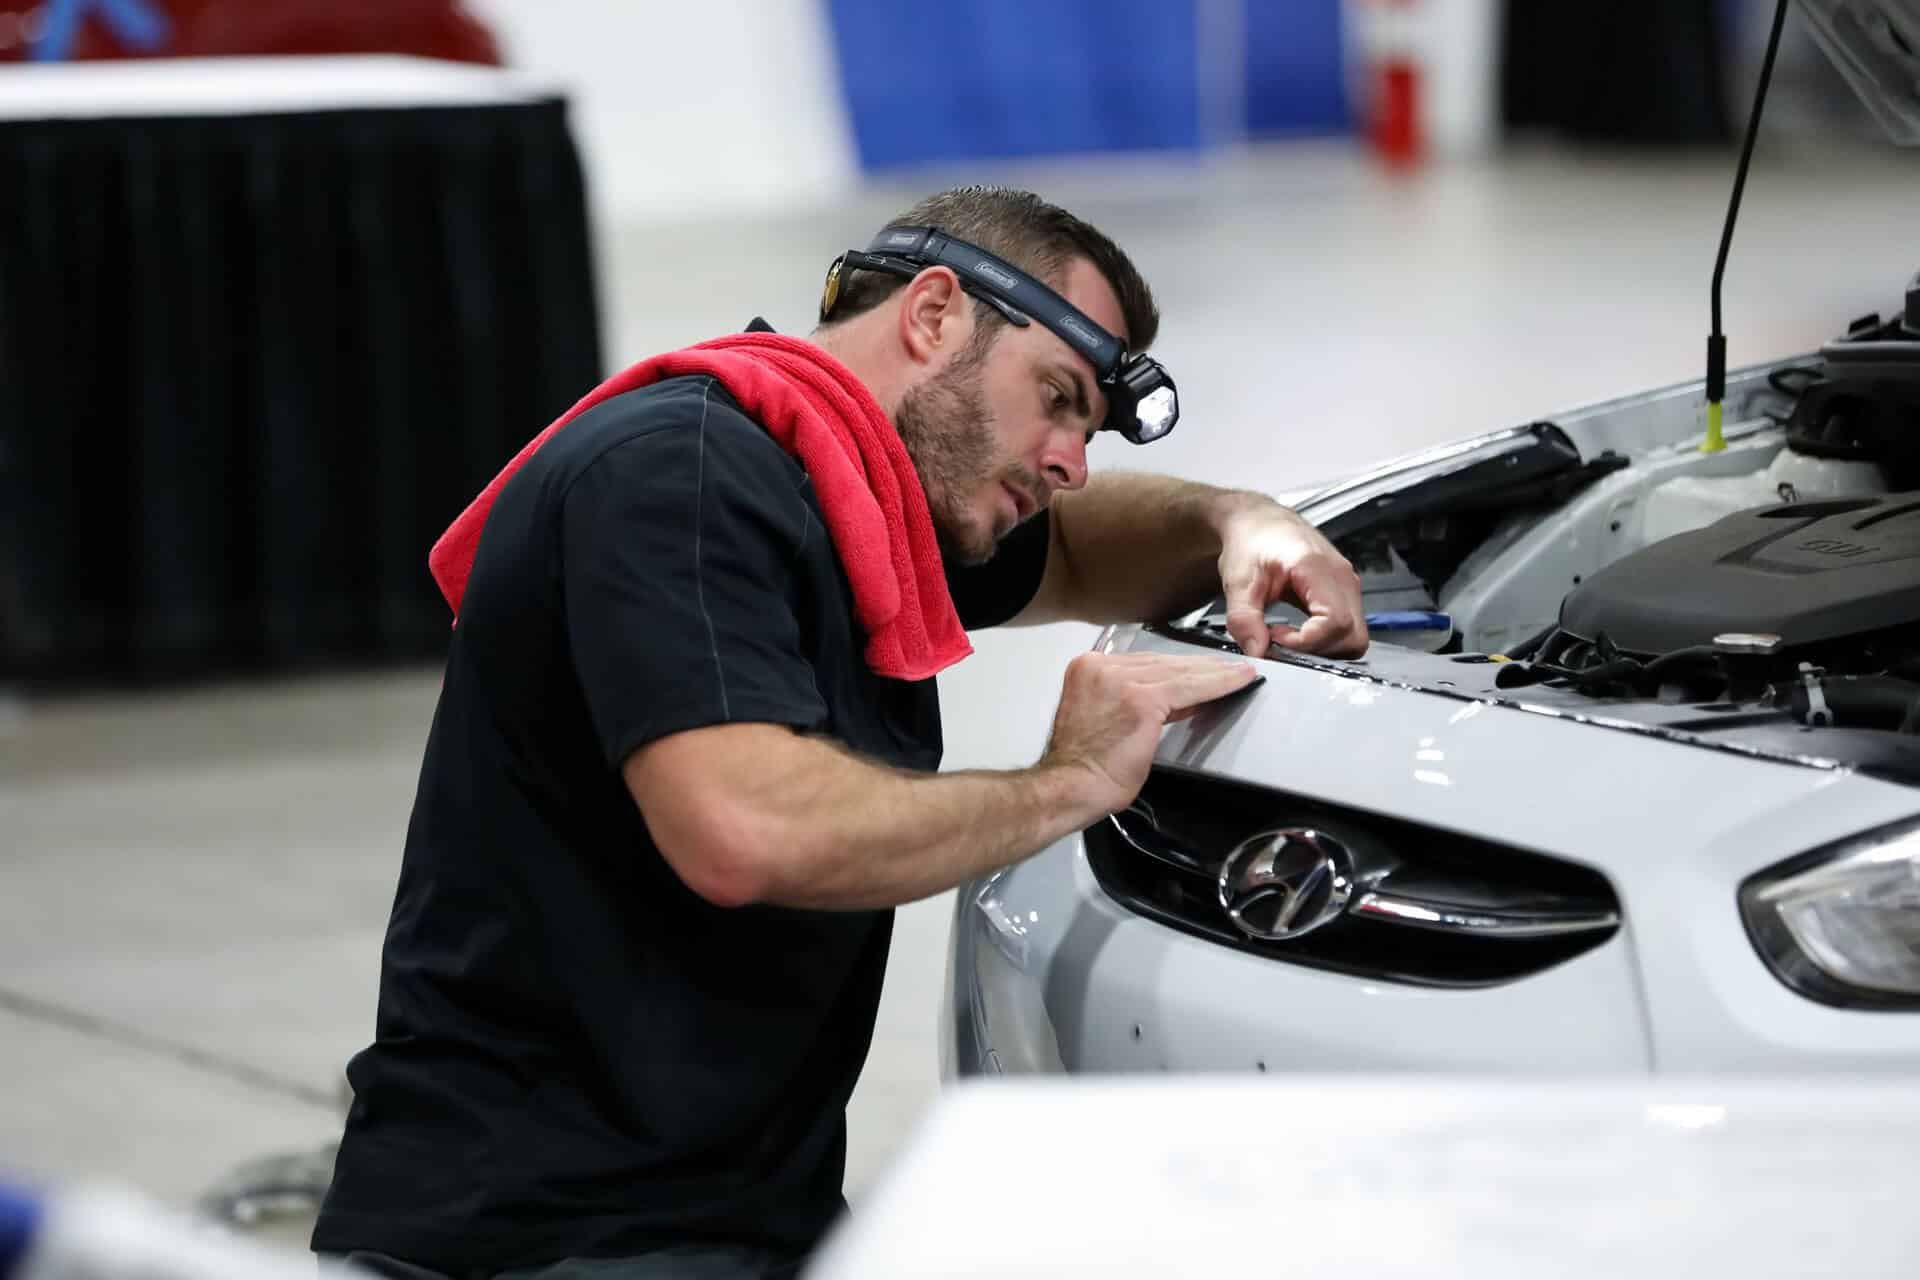 World's best paint protection installer Tyler O'Hara working diligently on this white Hyundai